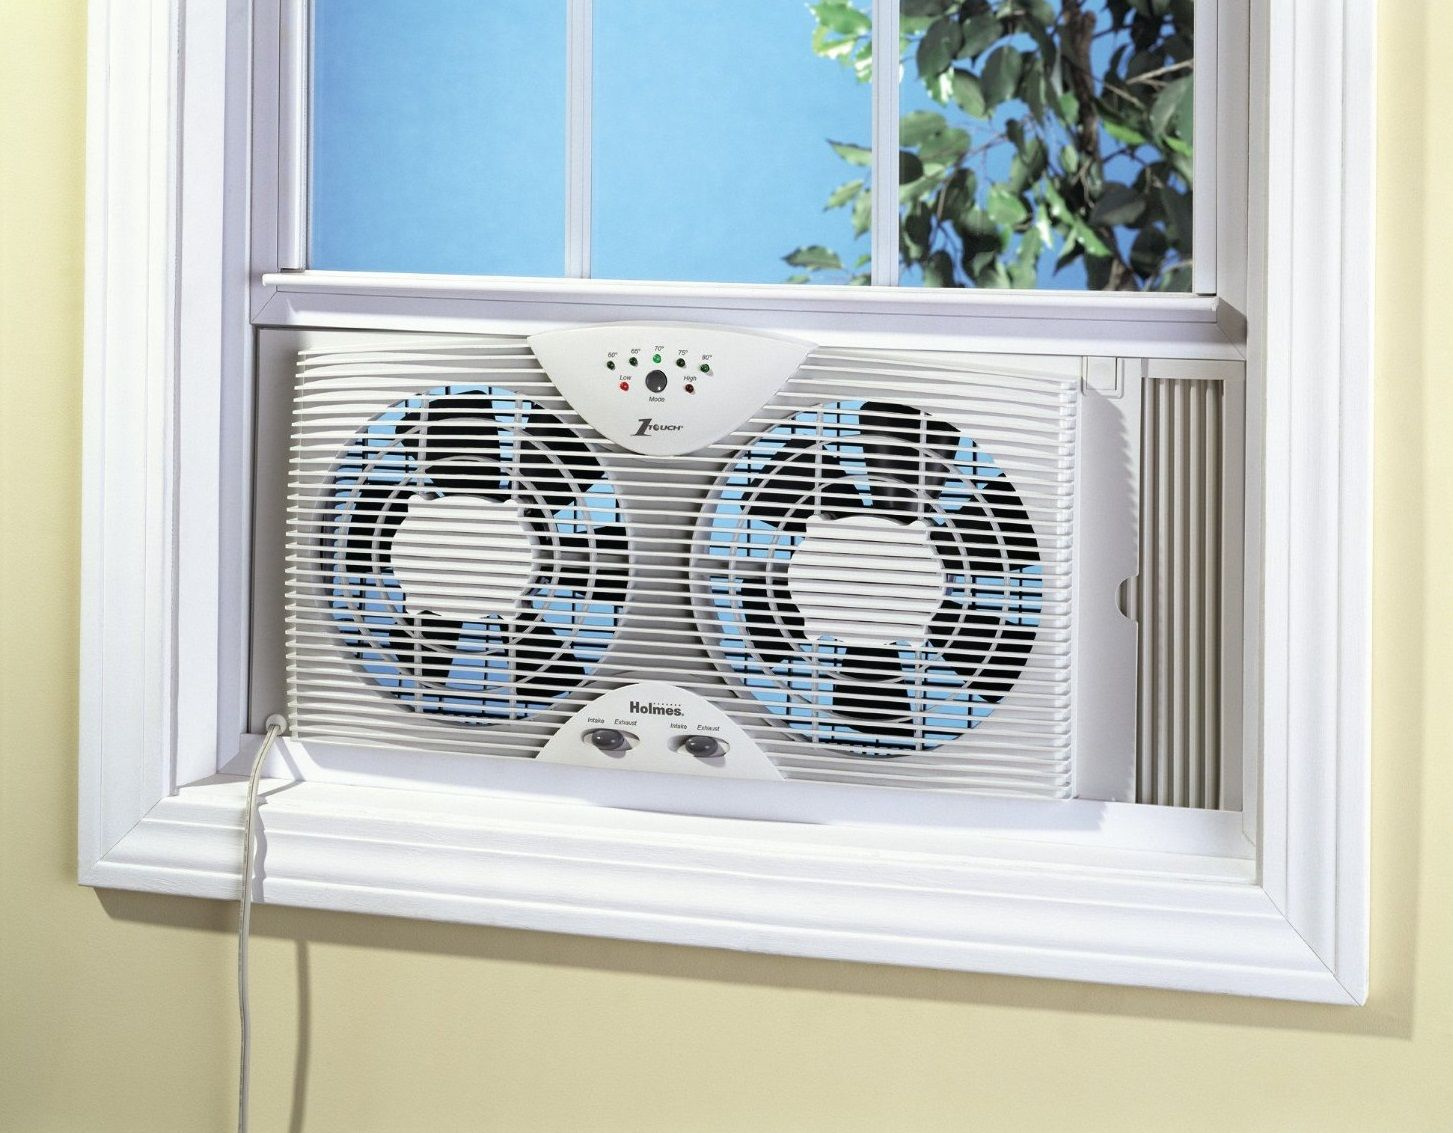 Are You Looking For A Good Window Fan To Cool Your House This Summer Check Our Top 5 Window Fan Pick Window Fans Casement Window Air Conditioner Slider Window